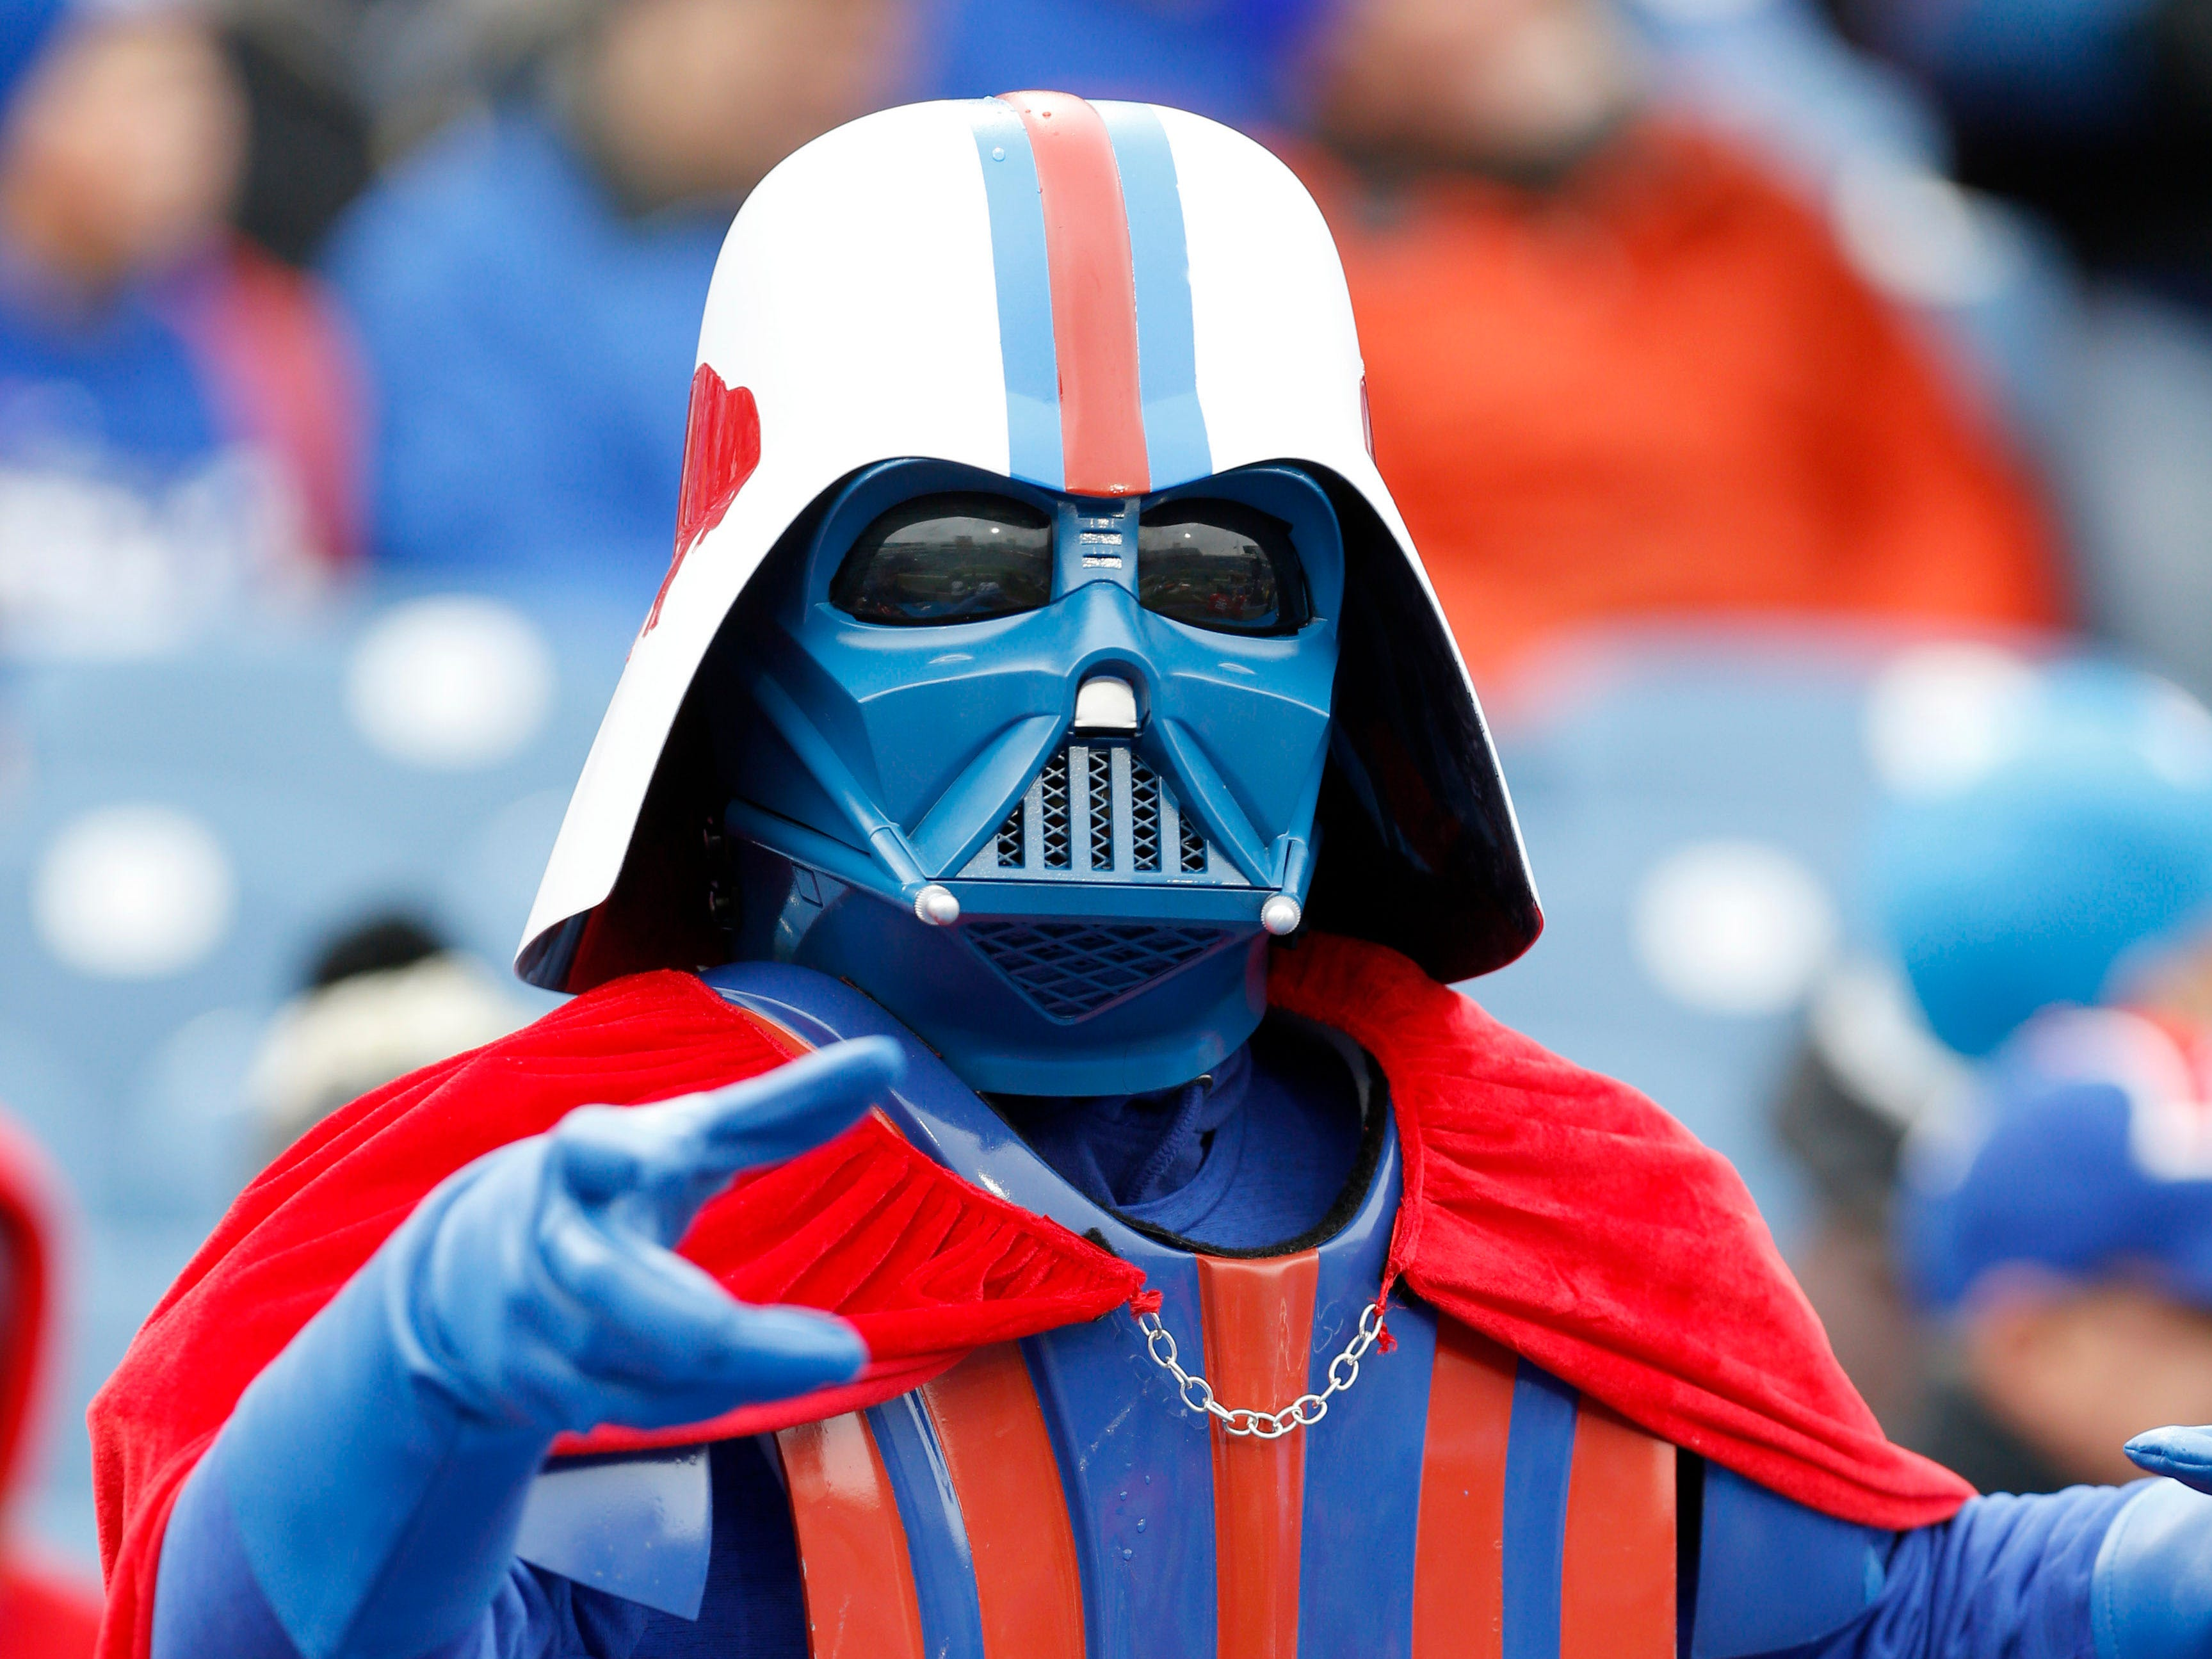 A Buffalo Bills fan cheers on his team before watching a game against the Jacksonville Jaguars at New Era Field.